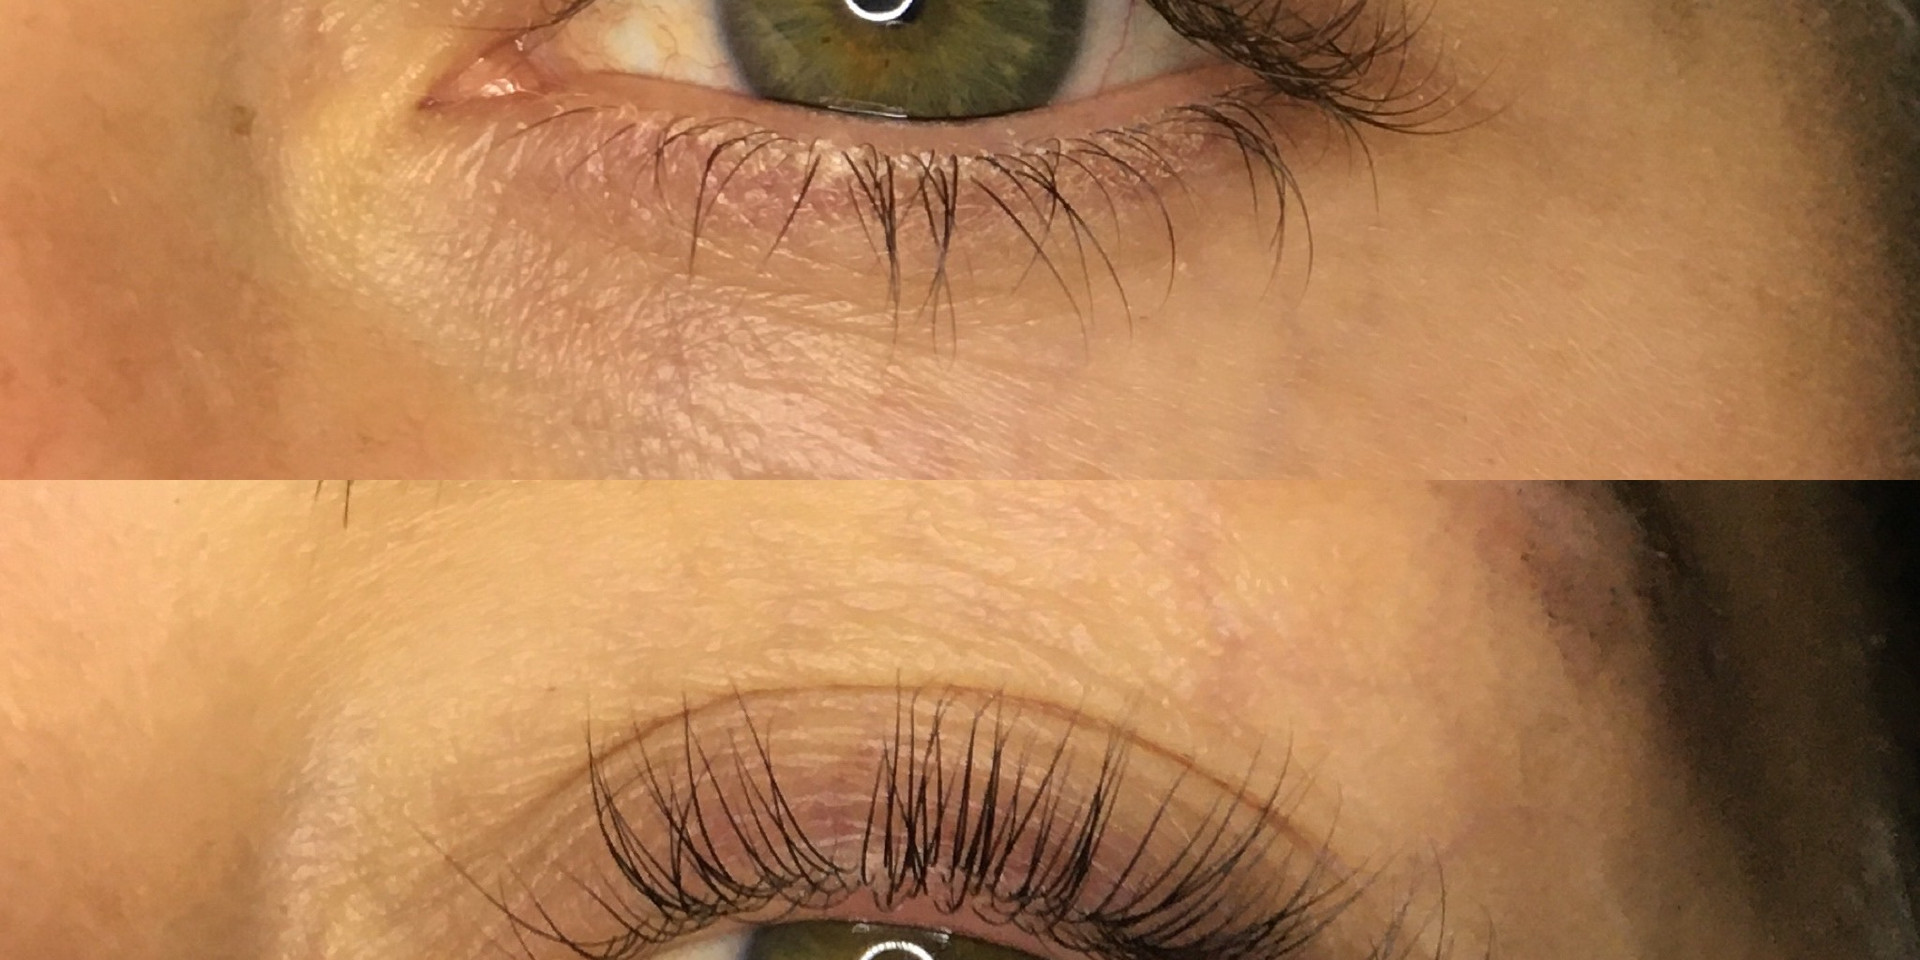 LASH LIFT BY KELLY